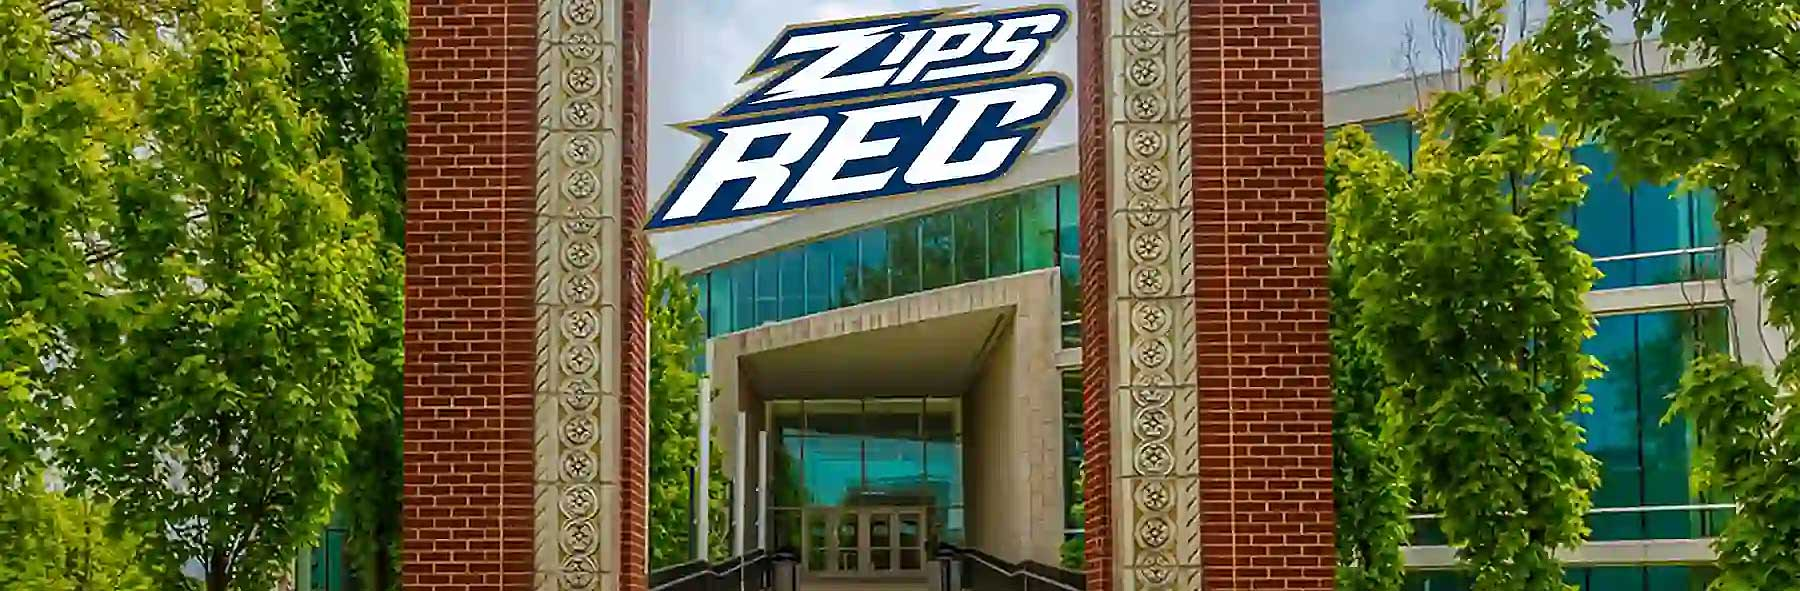 Student Rec & Wellness Services : The University of Akron